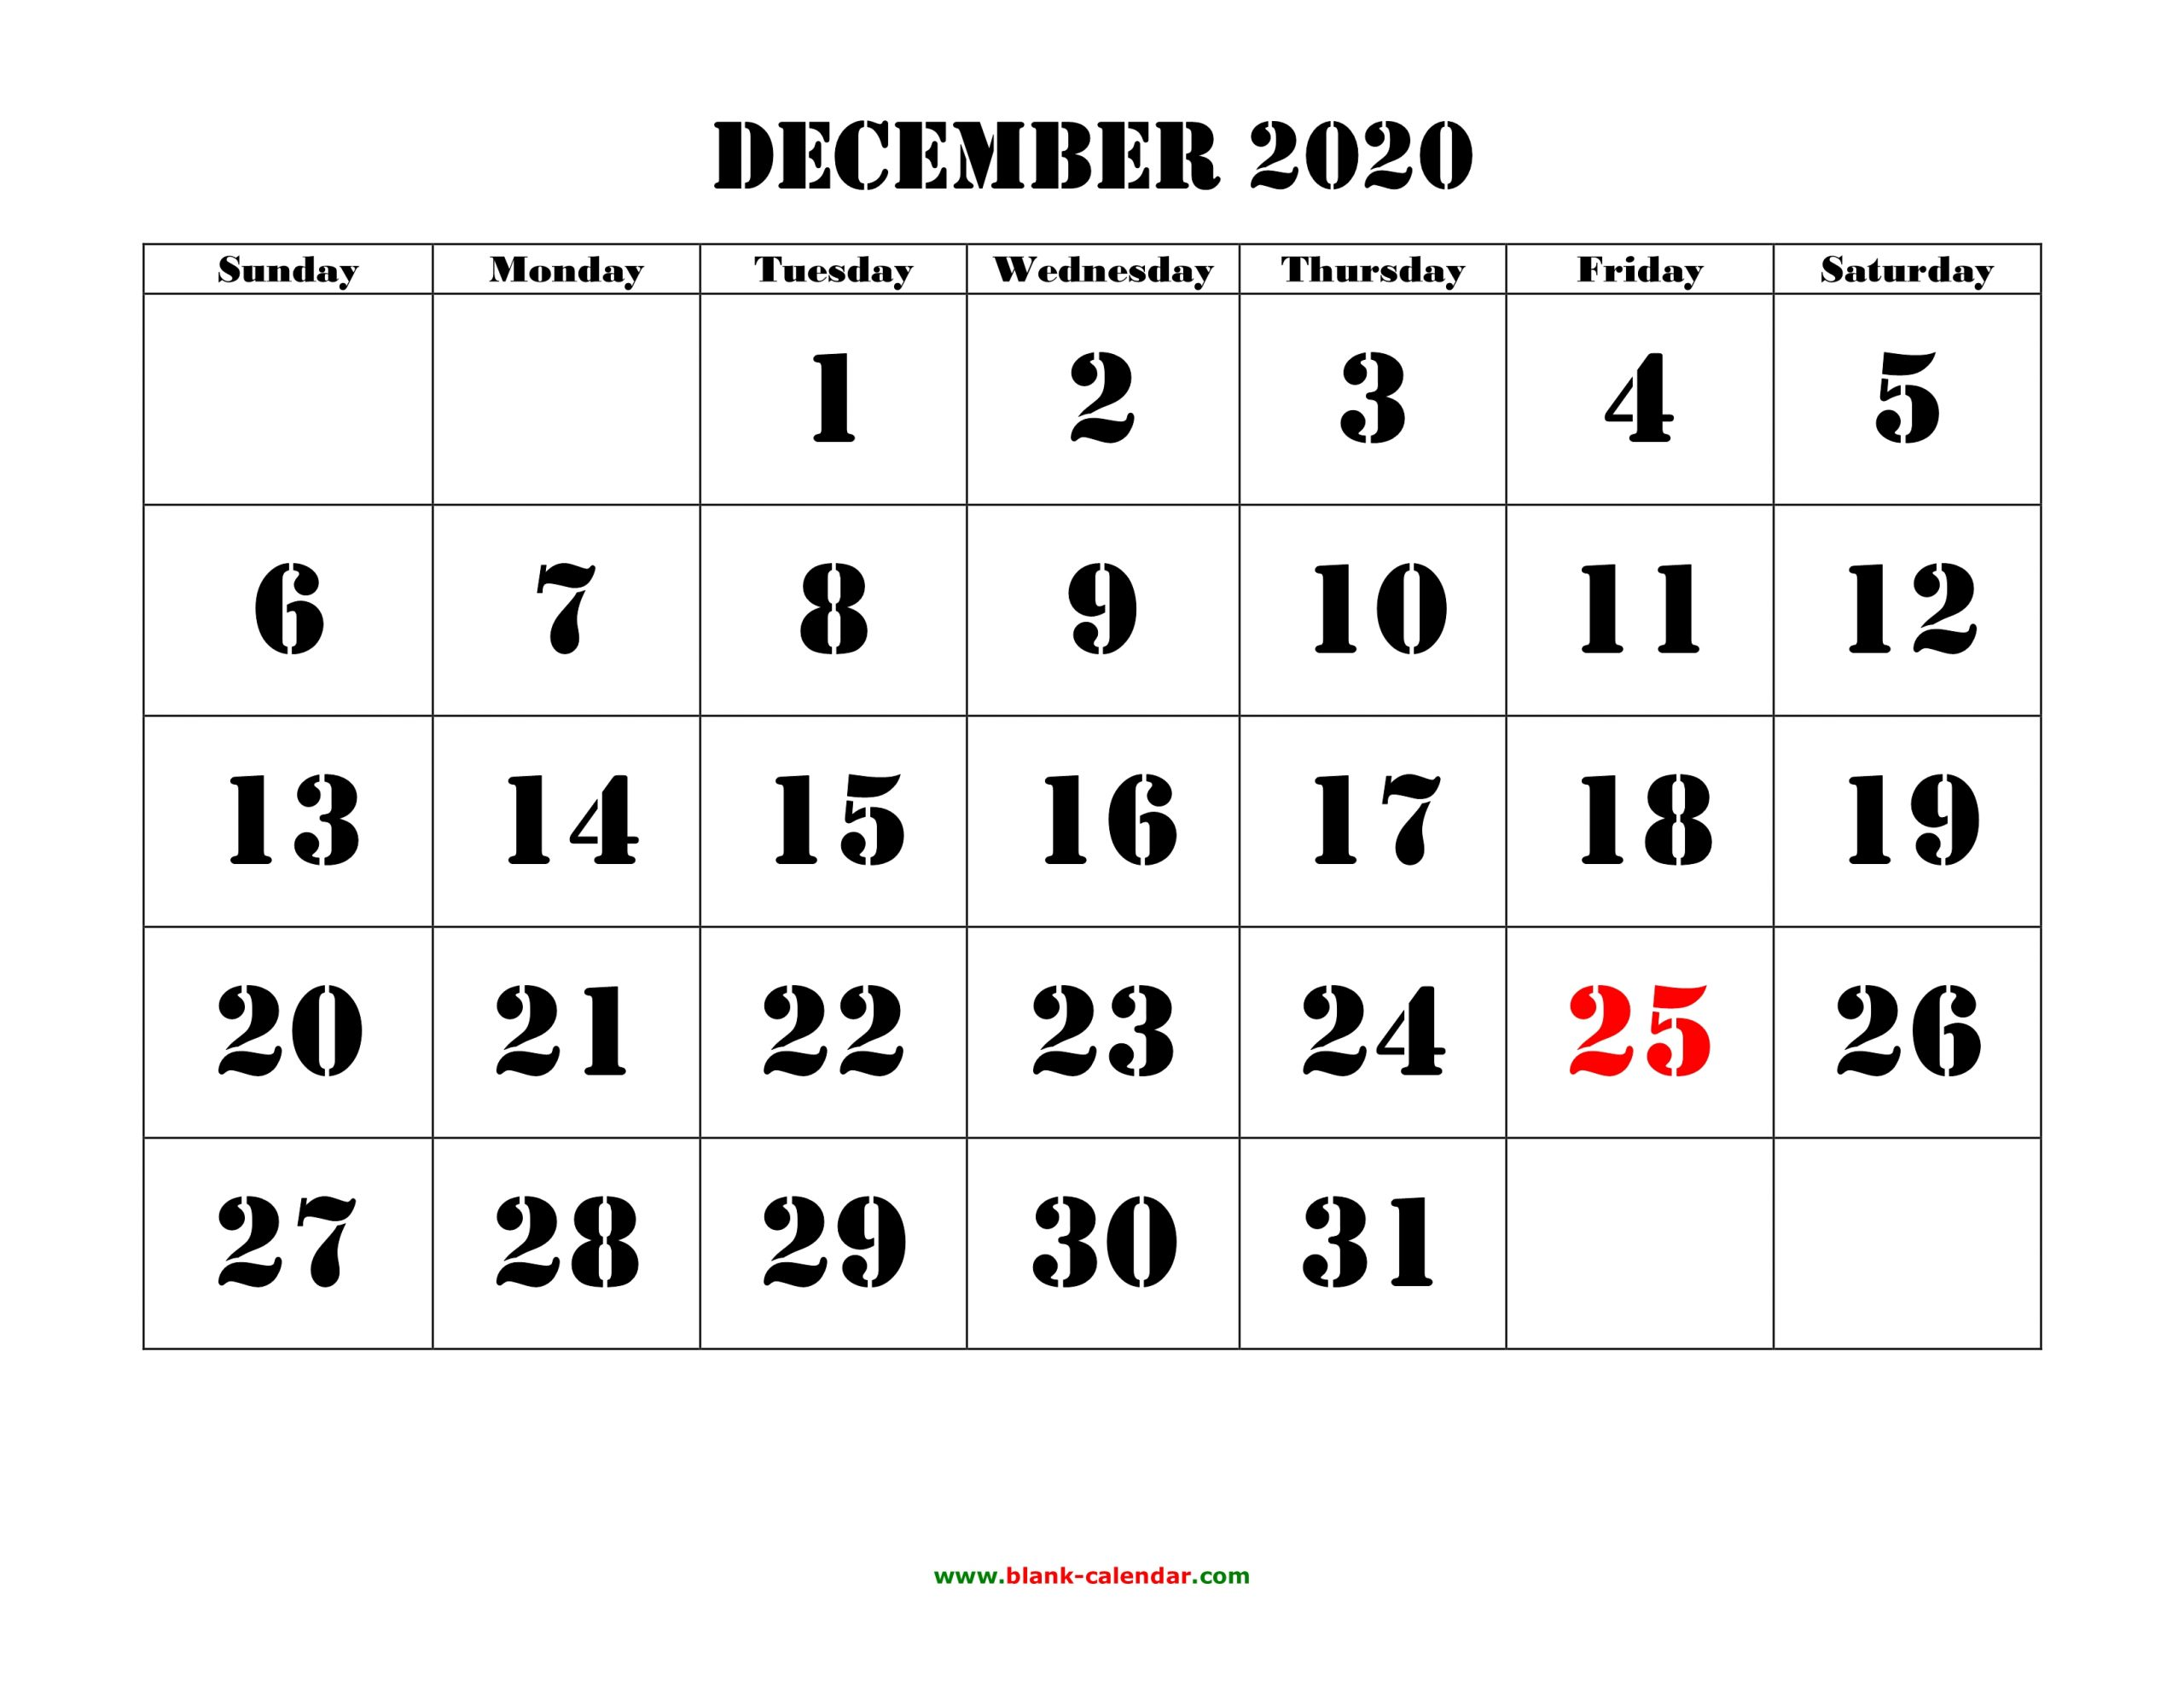 Free Download Printable December 2020 Calendar, Large Font